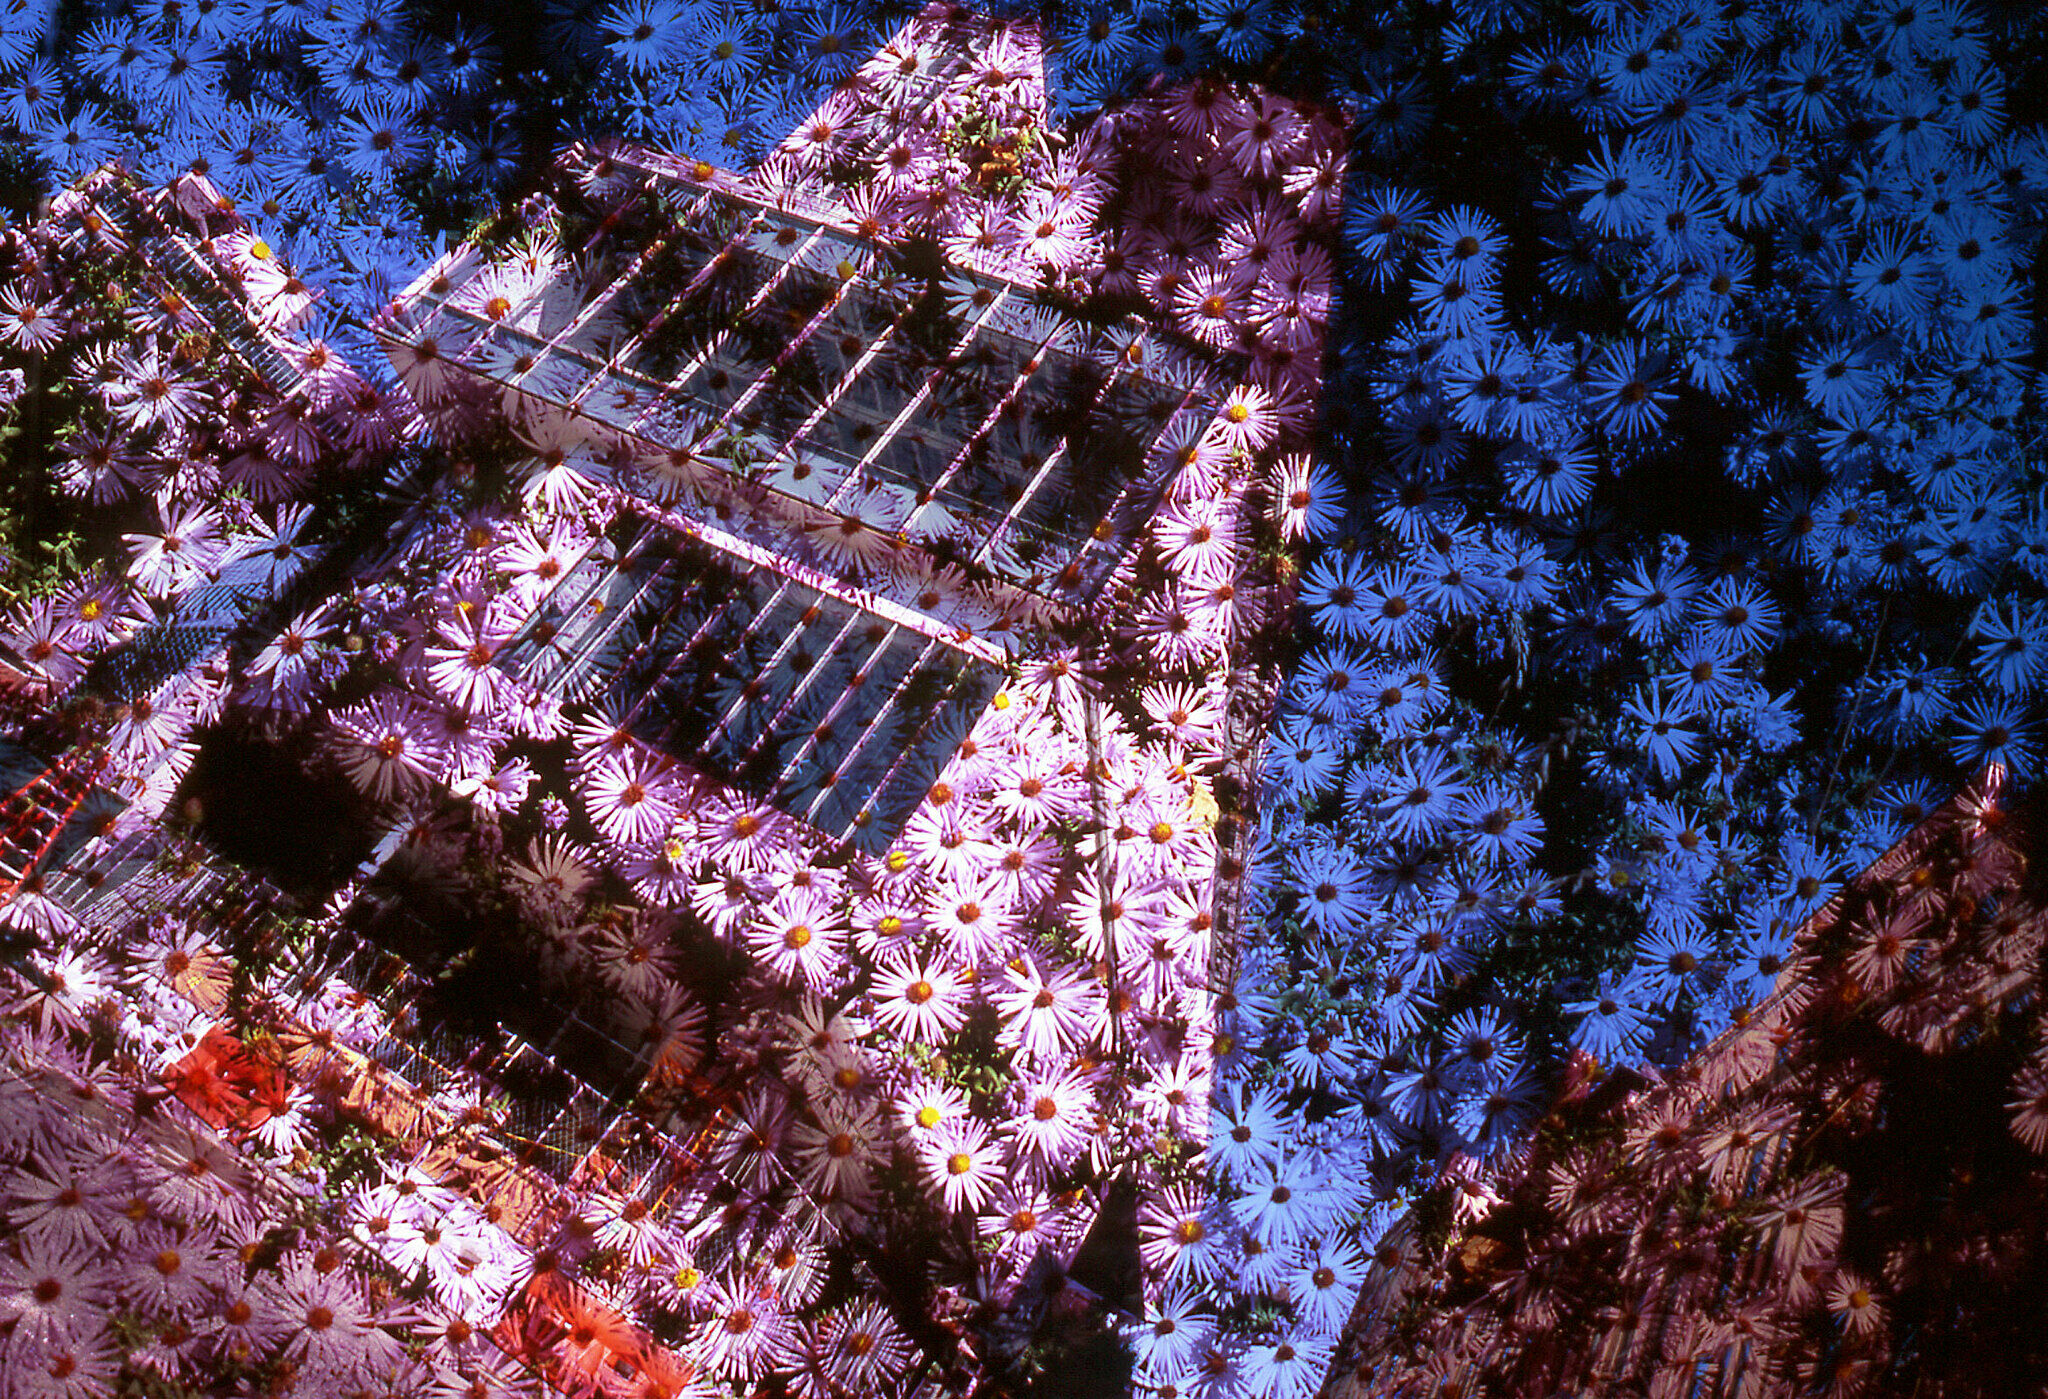 An image by Yuji Agematsu. The Whitney Museum is tinted pink and overlaid with flowers.